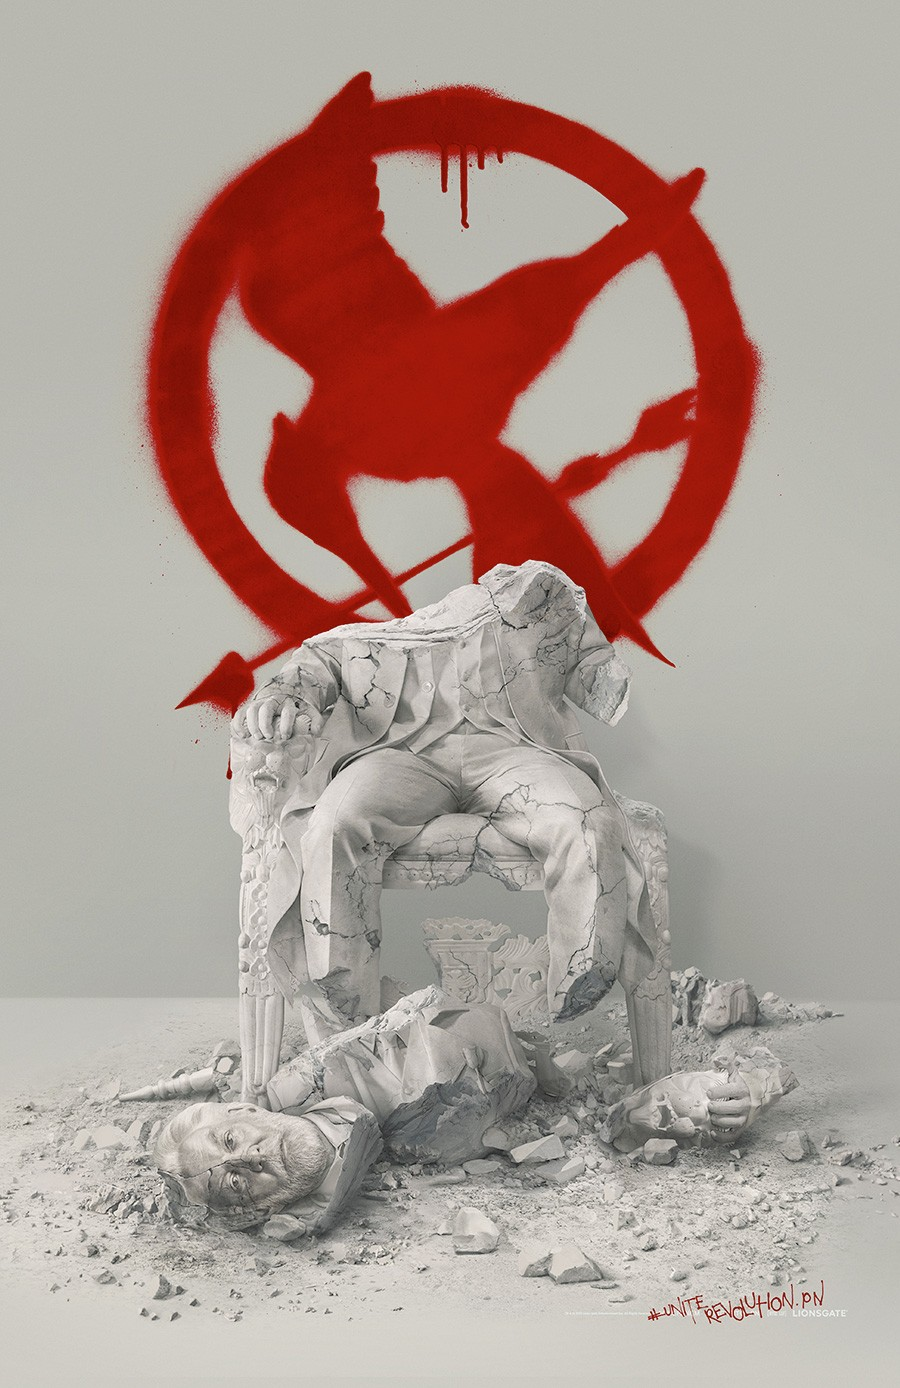 the-hunger-games-mockingjay-part-2-poster.jpg